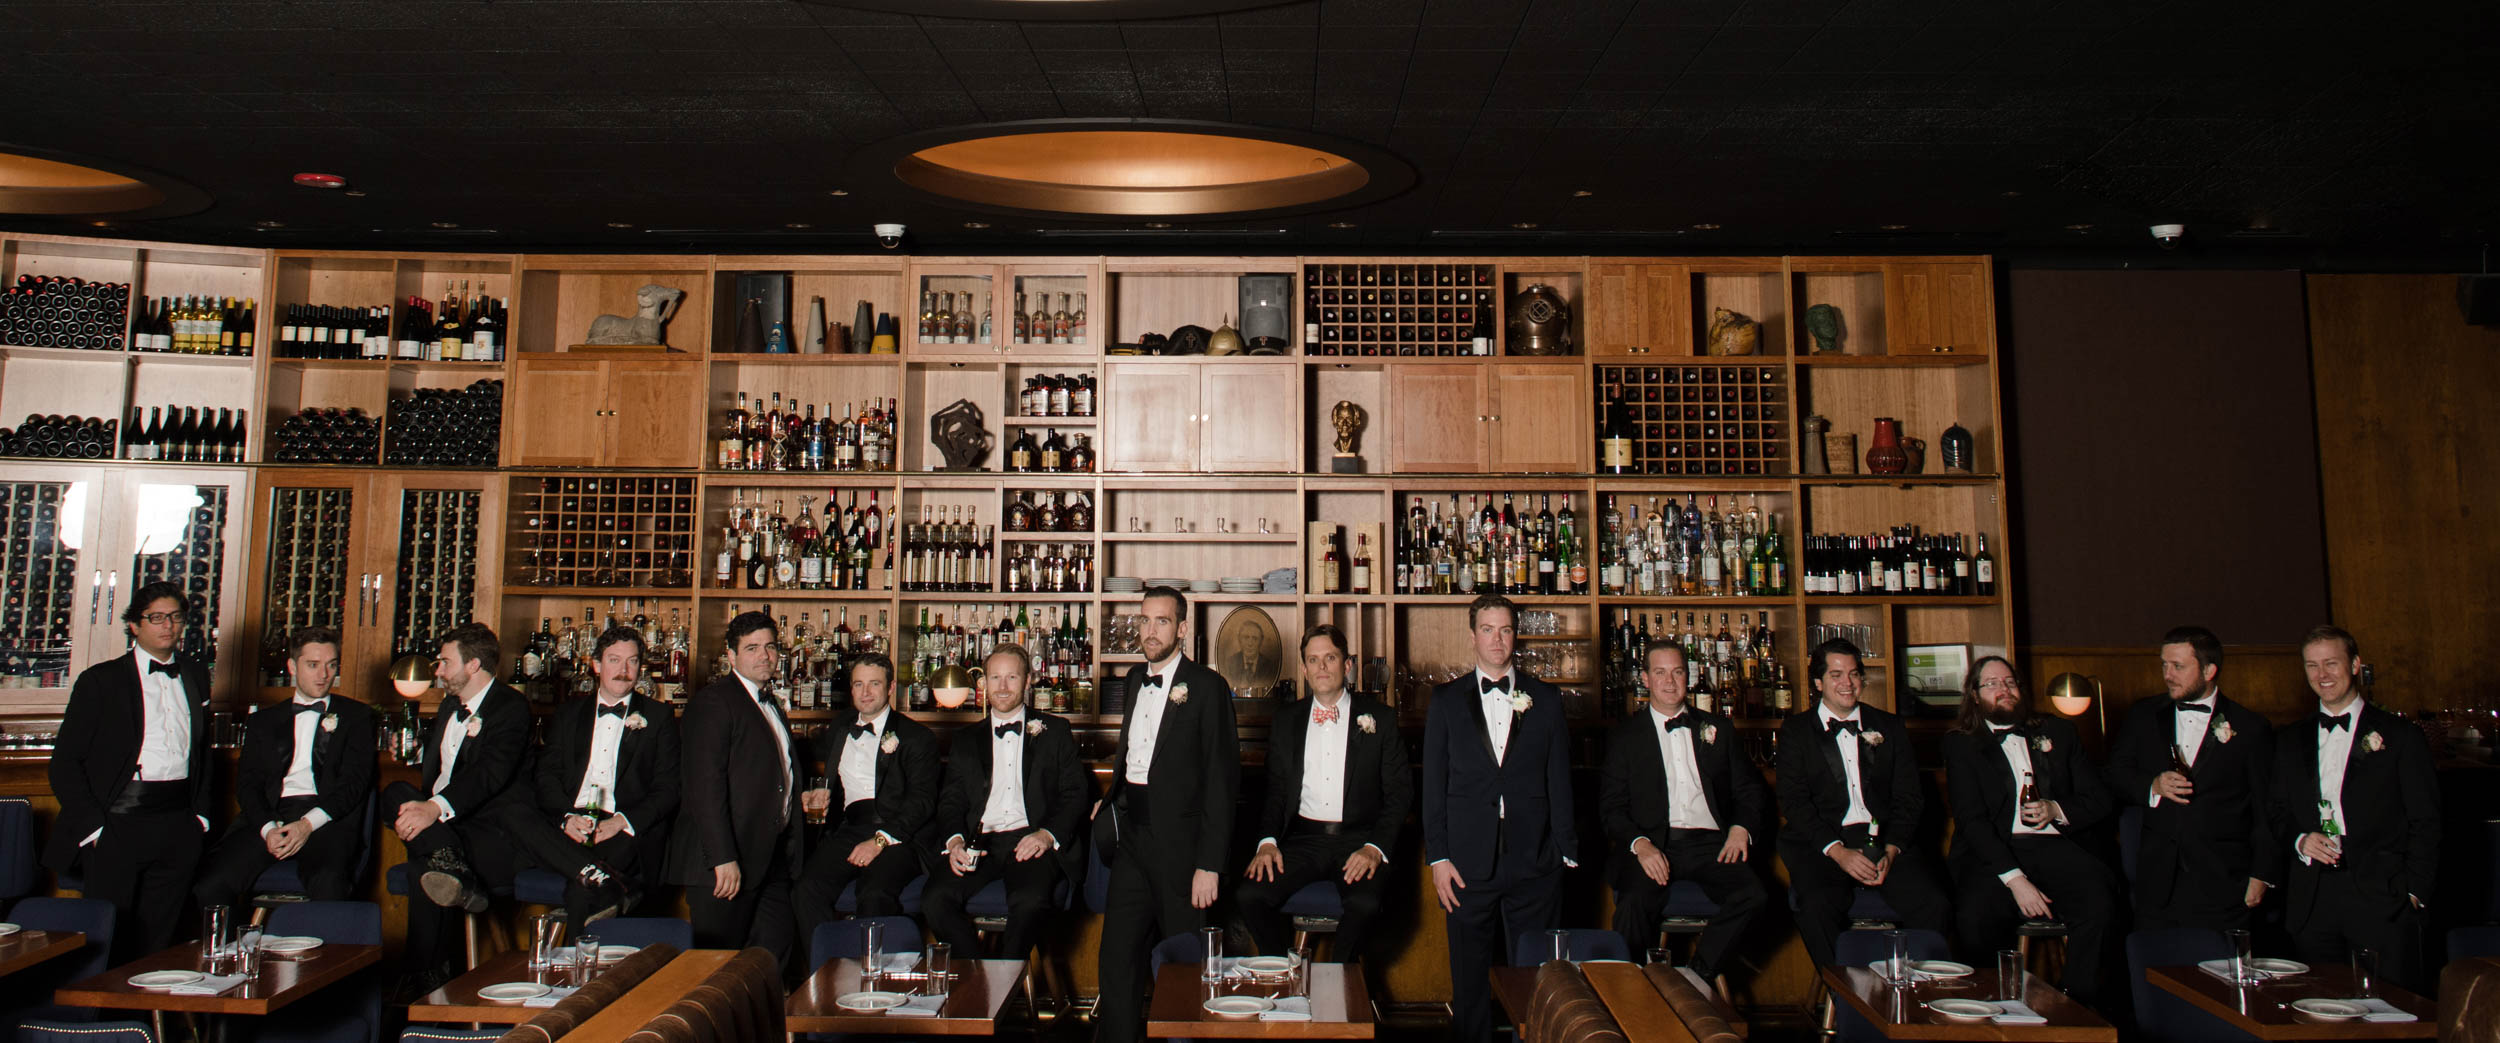 Groomsmen at Cherry Circle Room Bar in Chicago Athletic Association Hotel